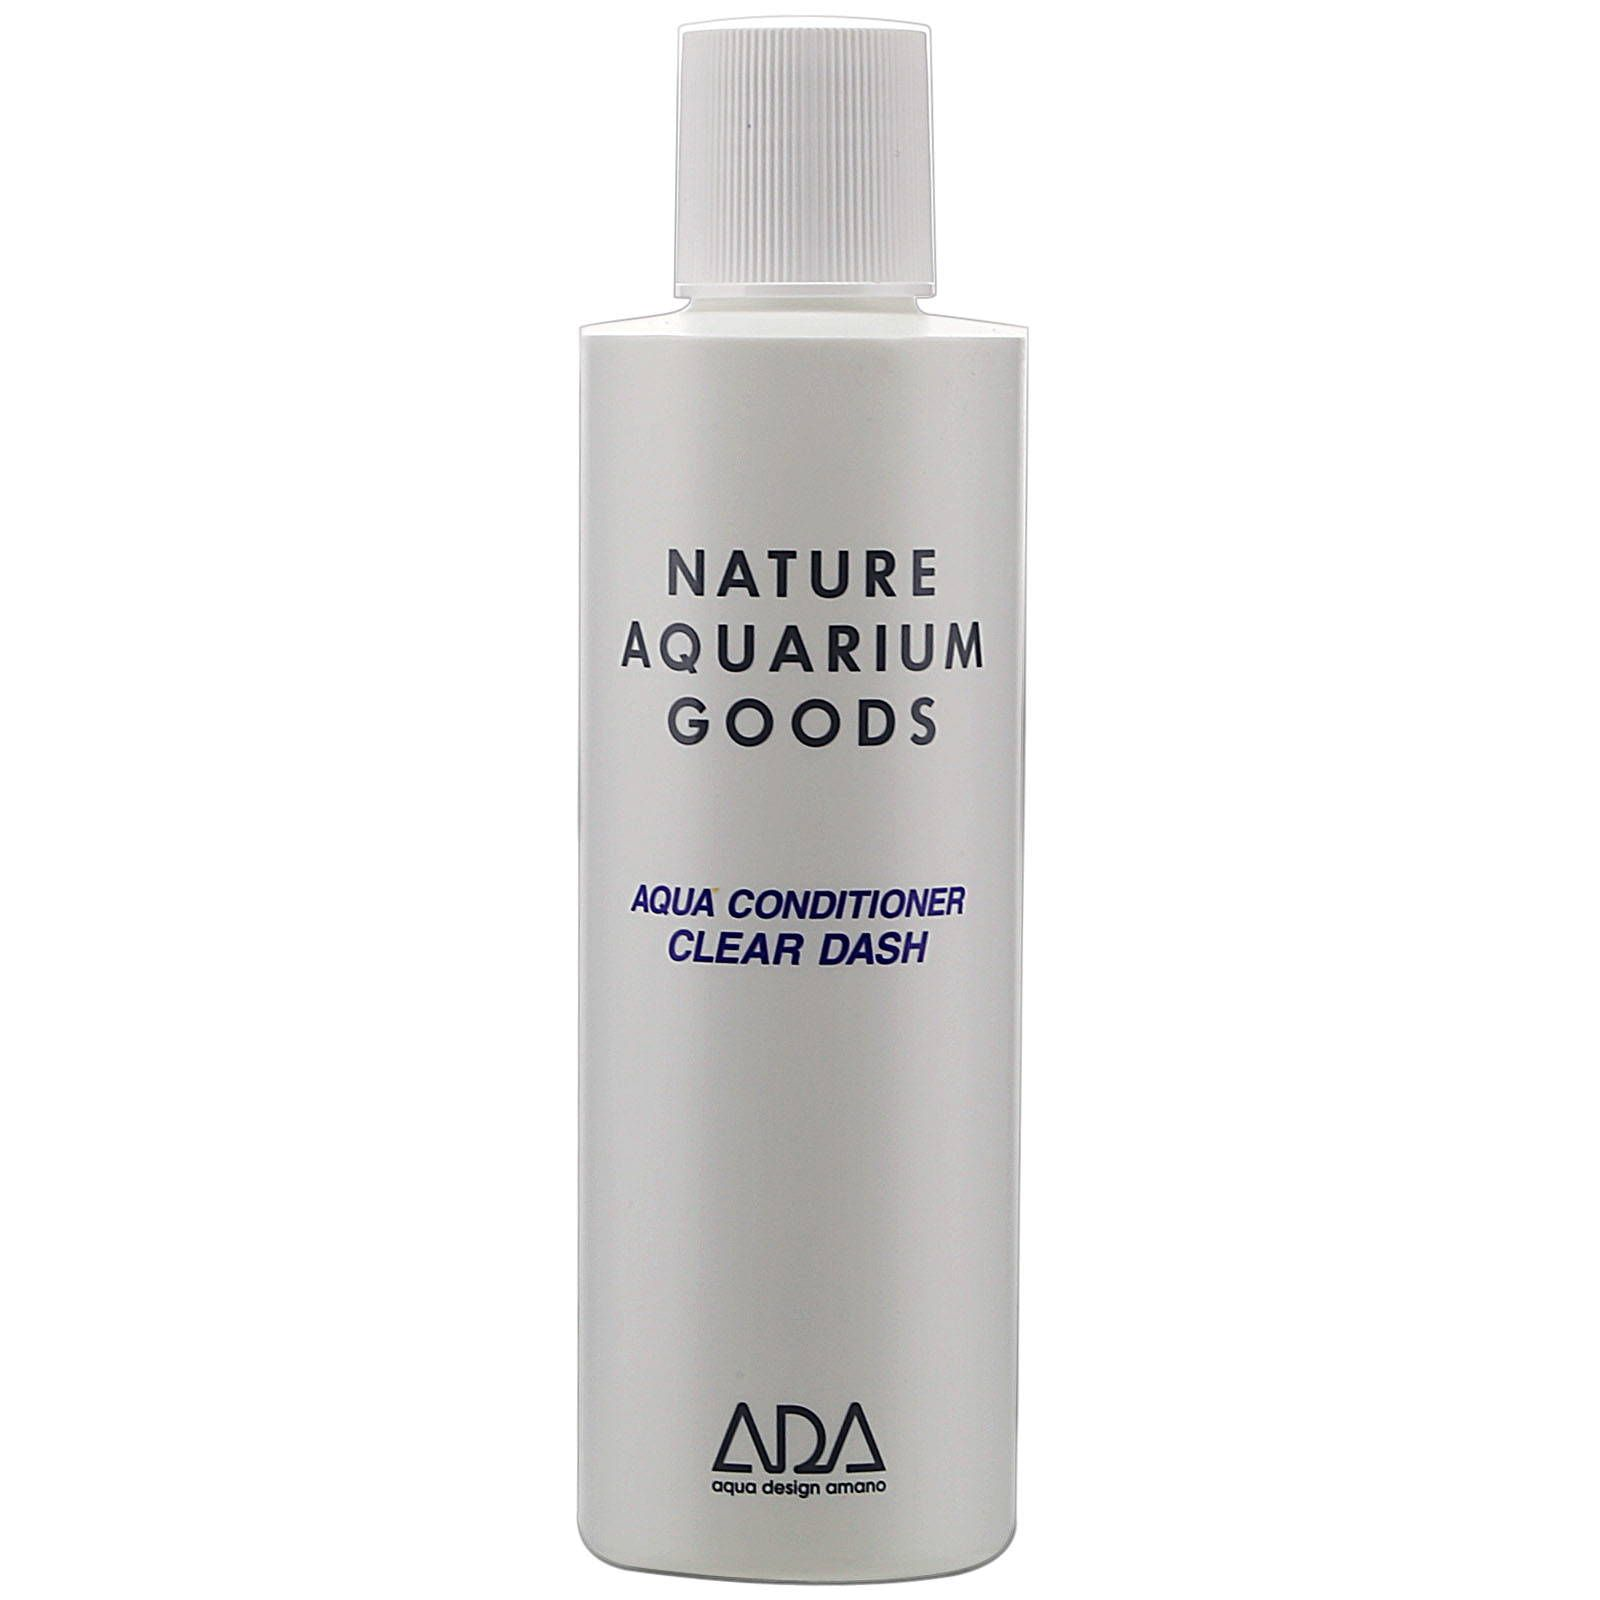 ADA - Aqua Conditioner - Clear Dash - 250 ml